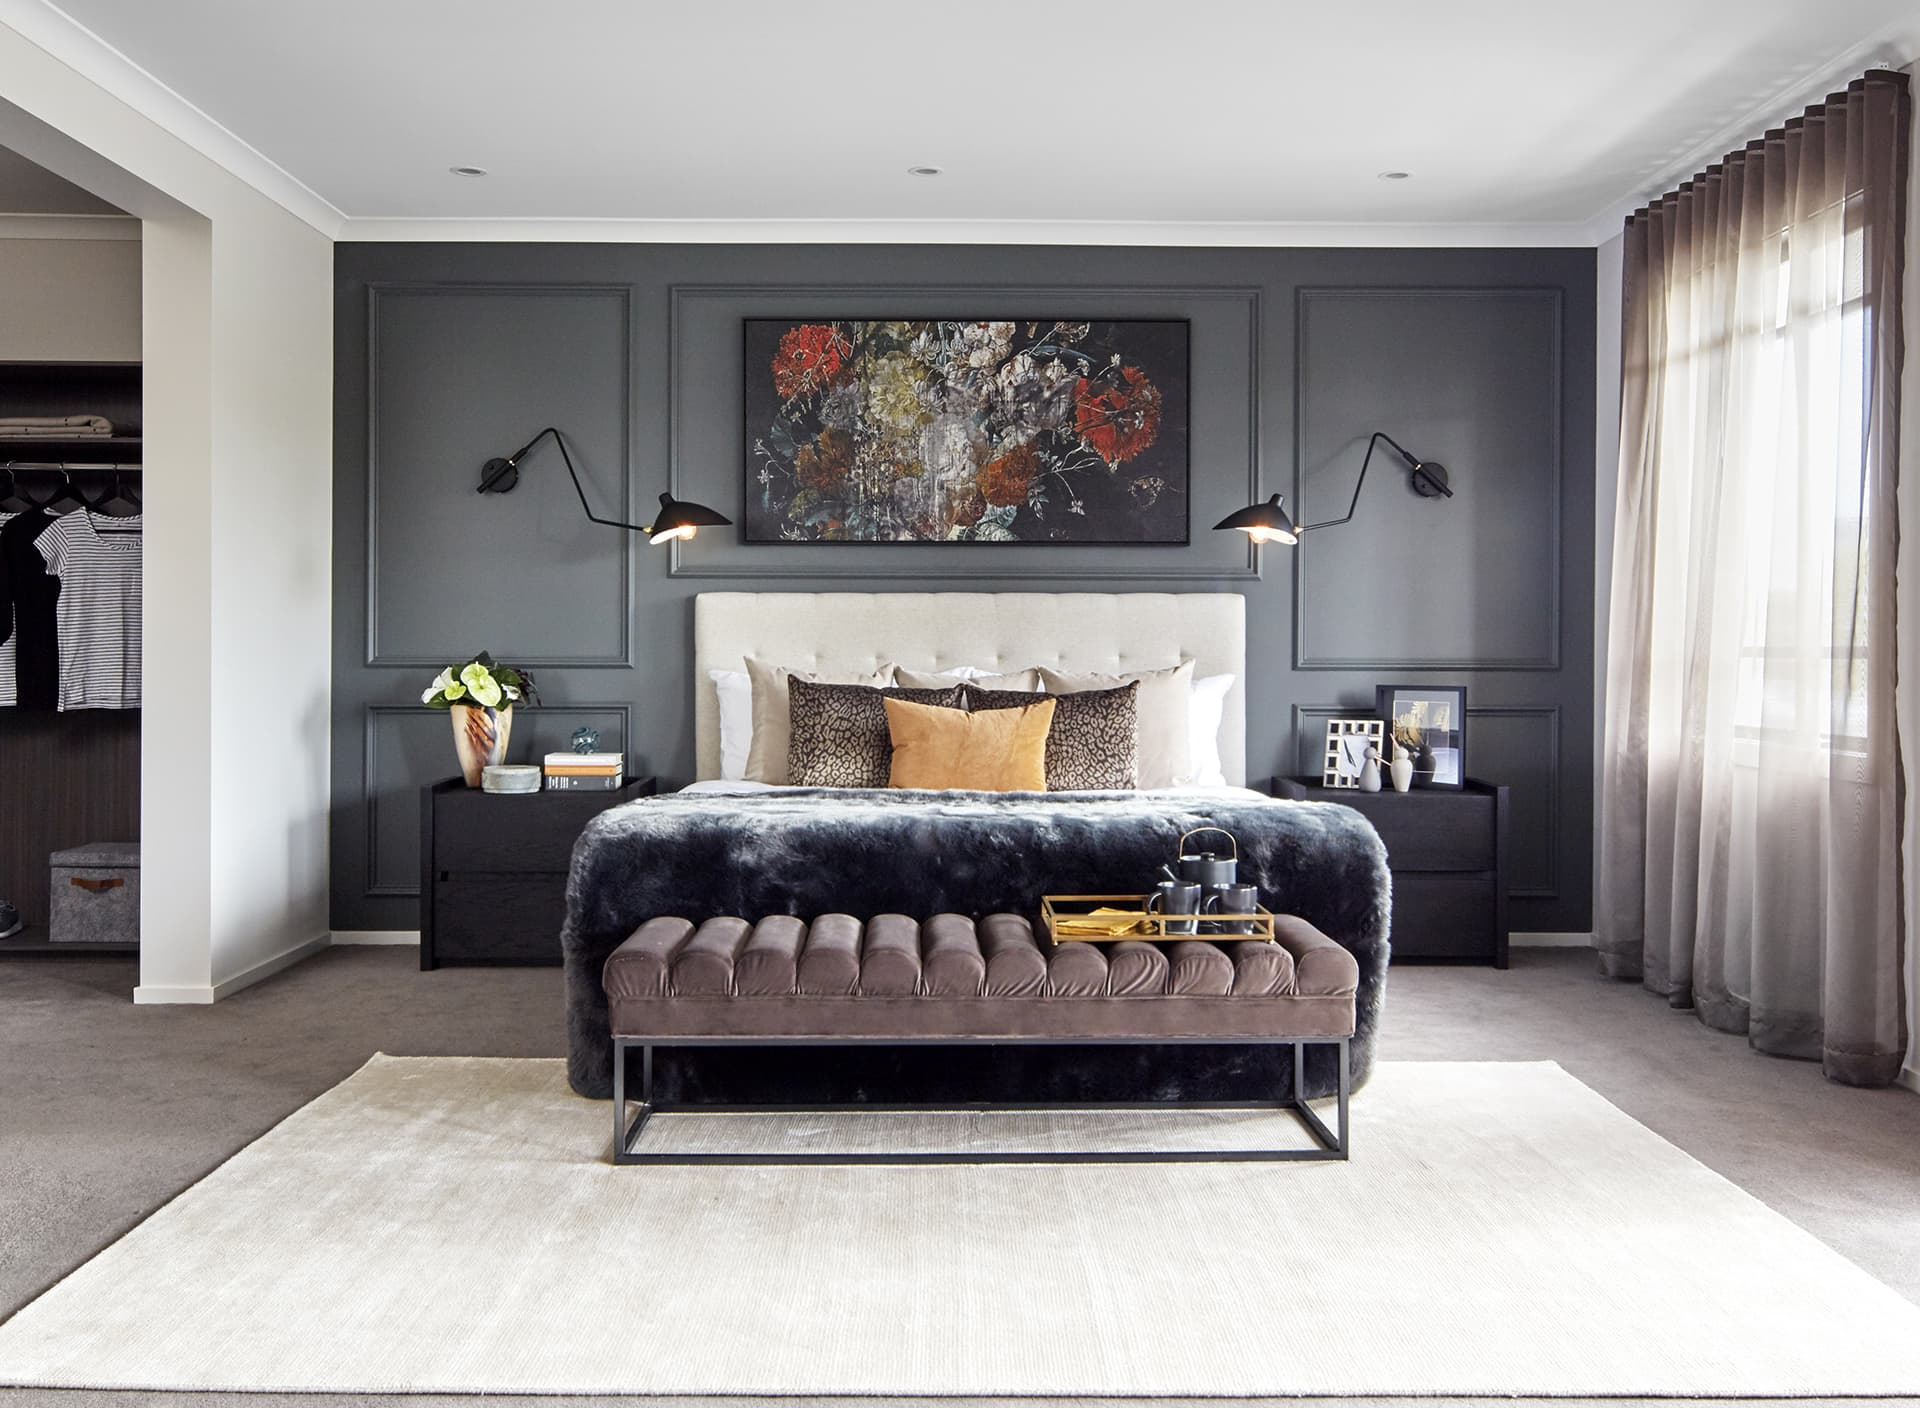 Bedroom Feature Wall Ideas: 9 Stylish Options - TLC Interiors